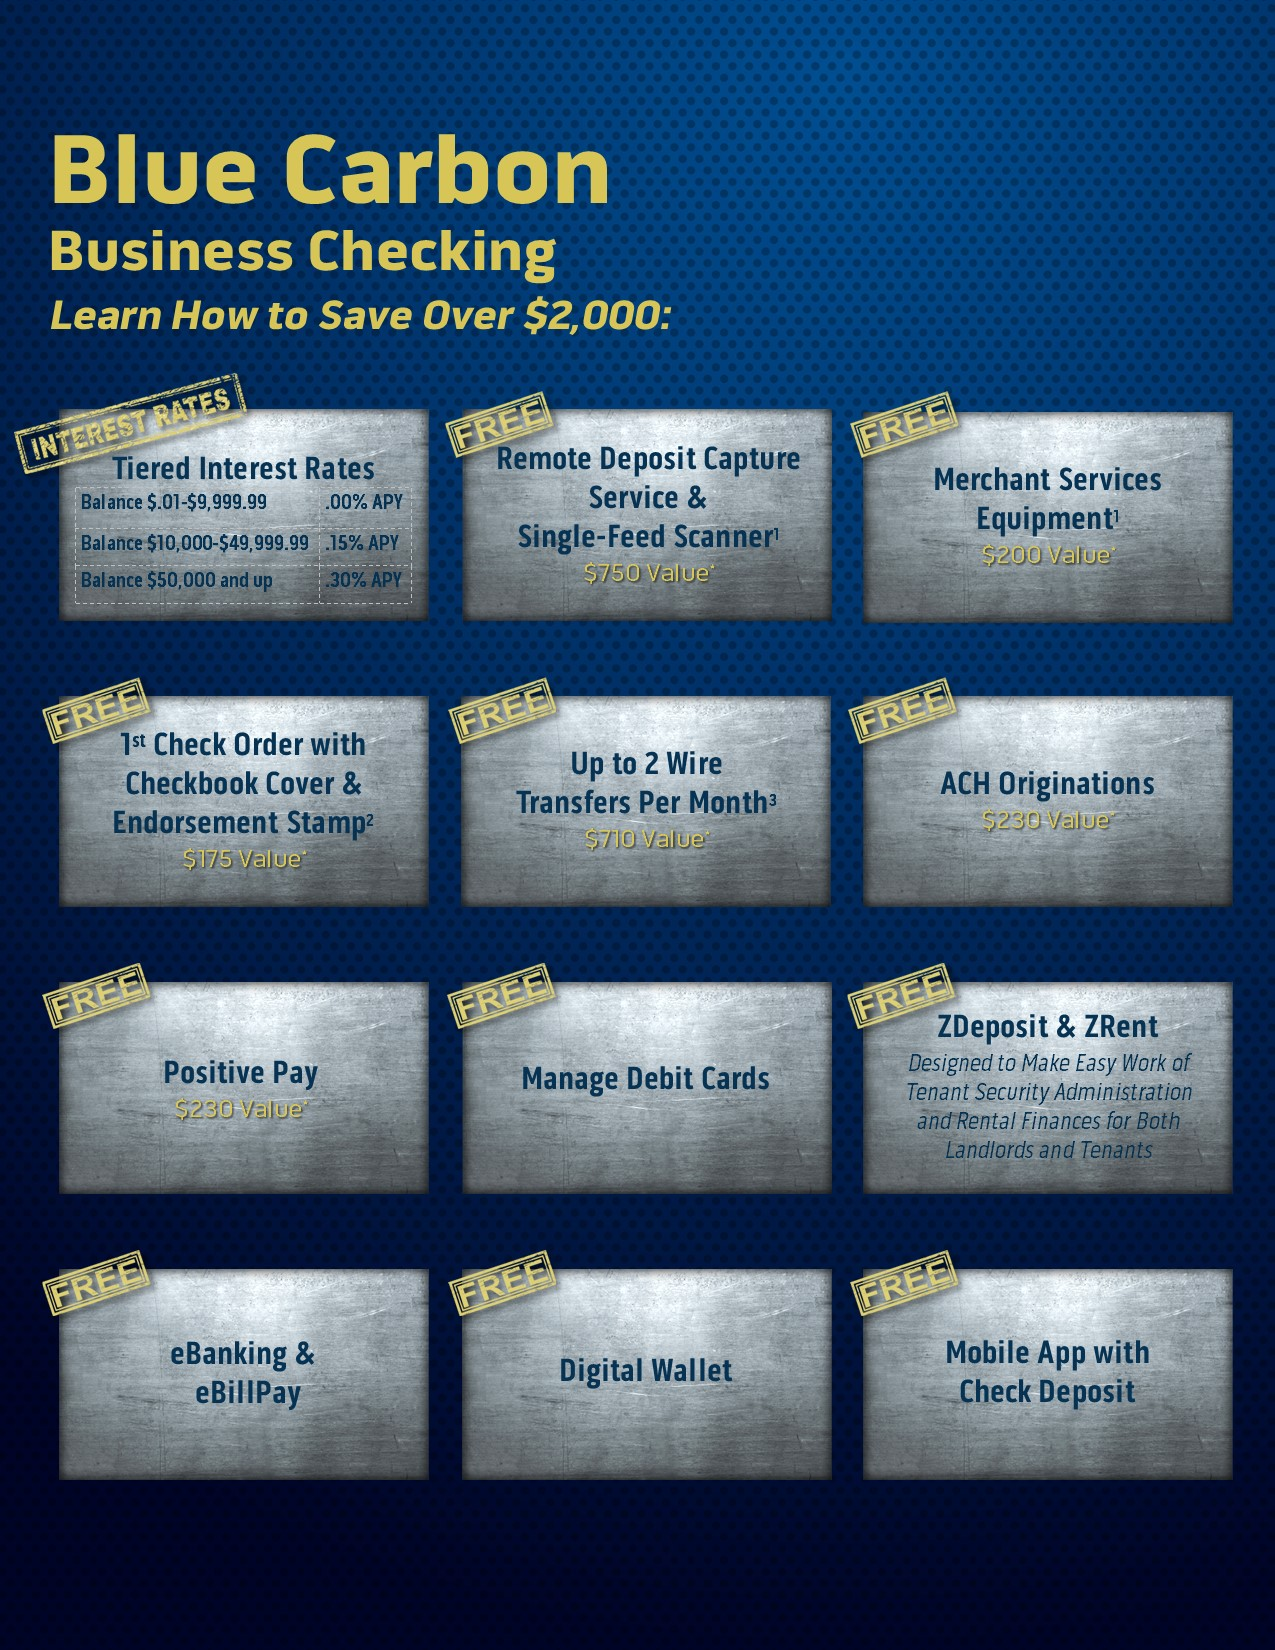 Blue Carbon Business Checking for Landing Page - 09.23.20